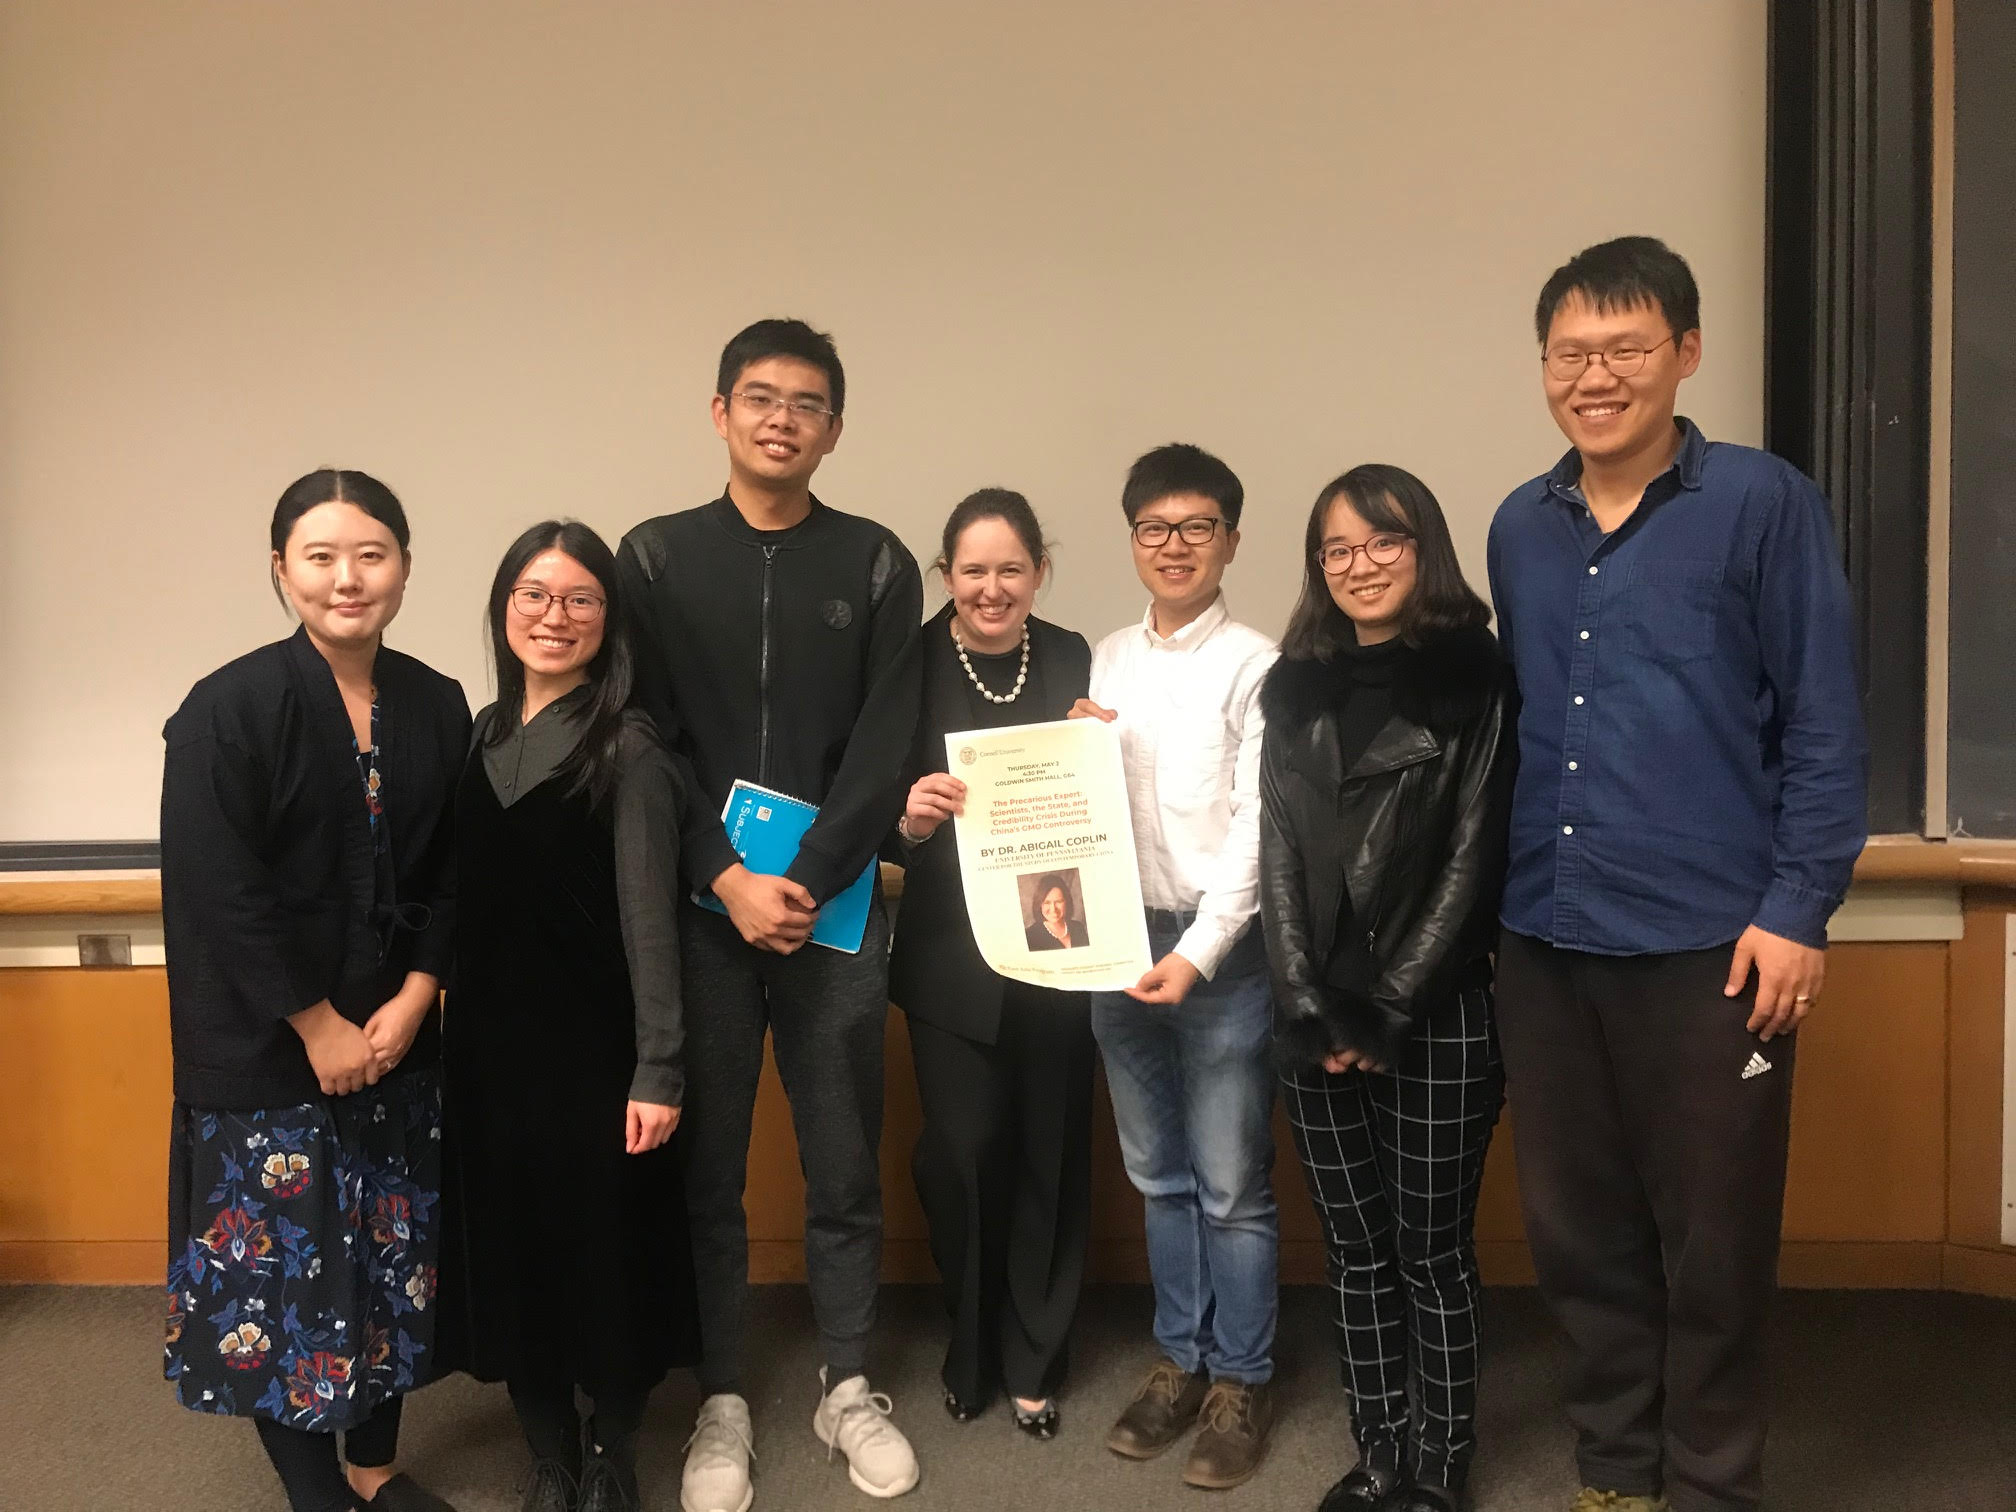 East Asia Program graduate students group photo with guest Abigail Coplin